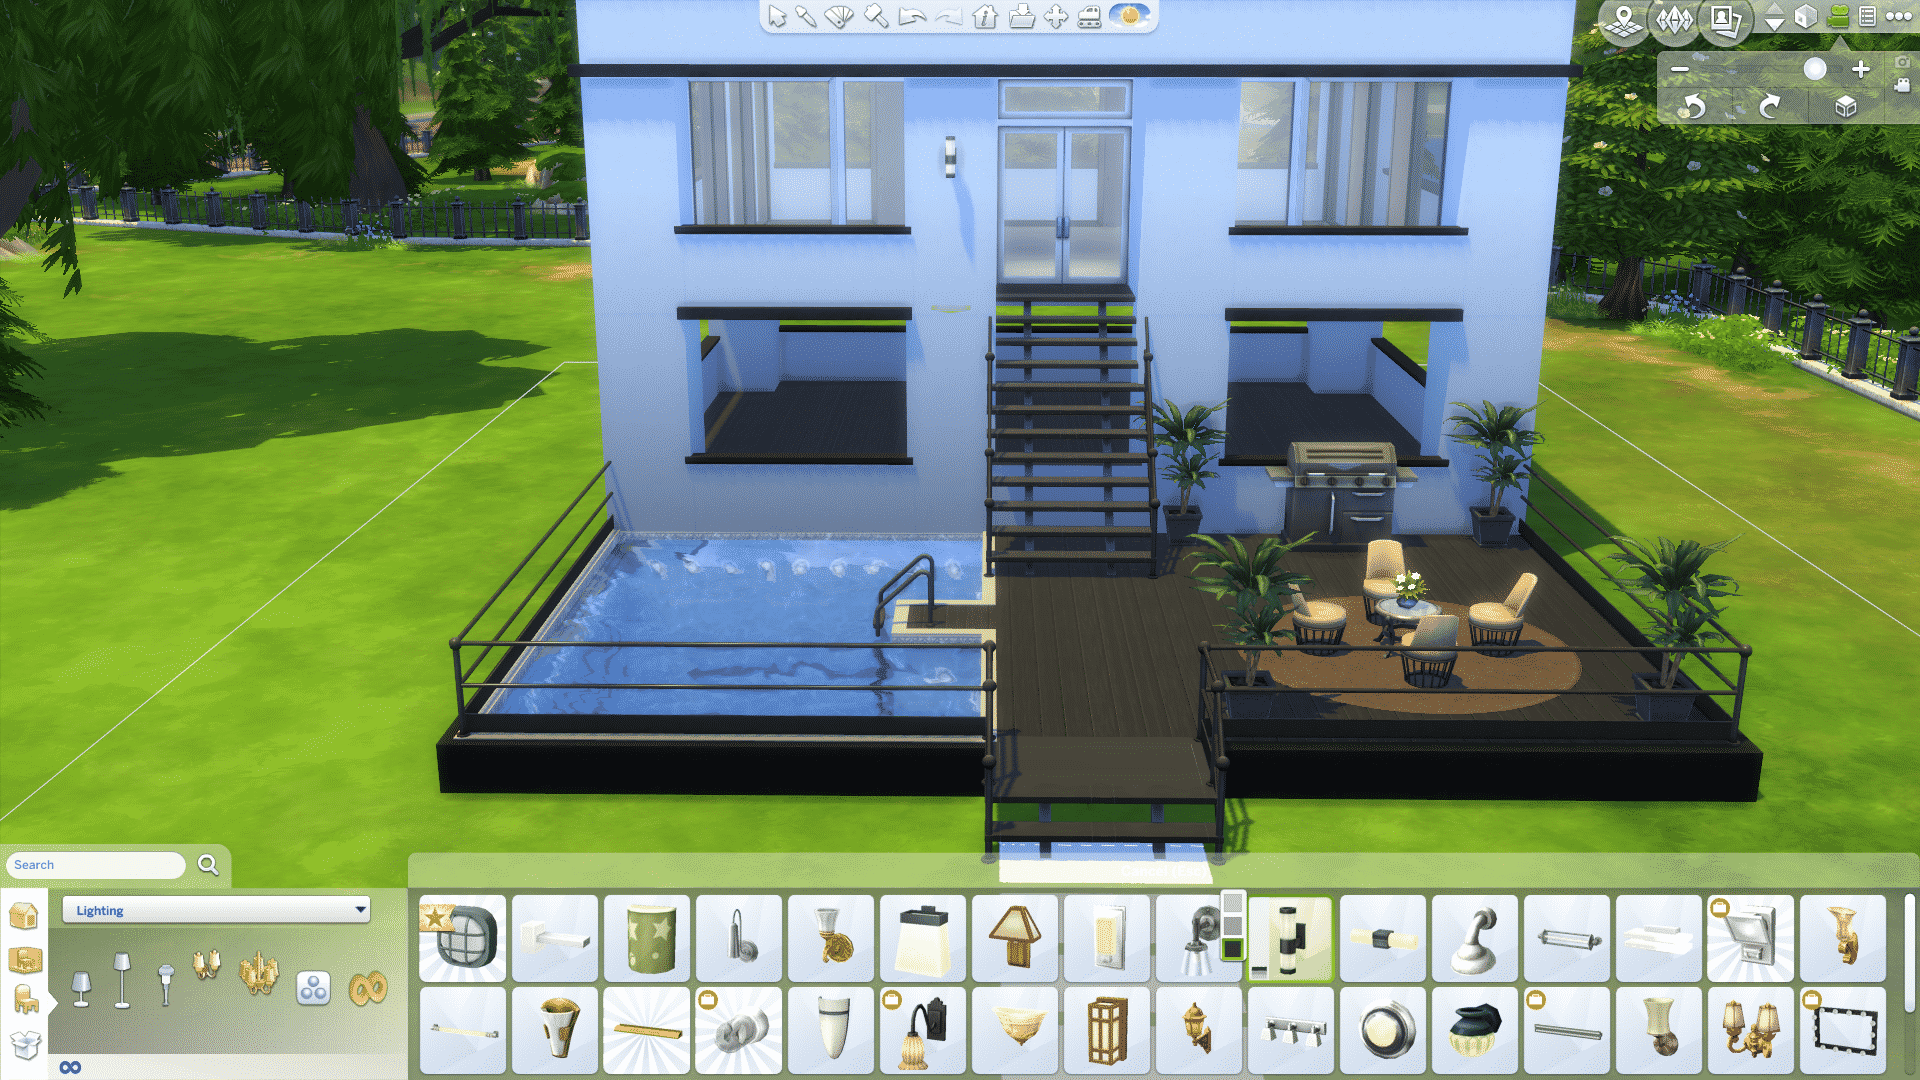 The sims 4 how to build a simple modern house for Pool design sims 3